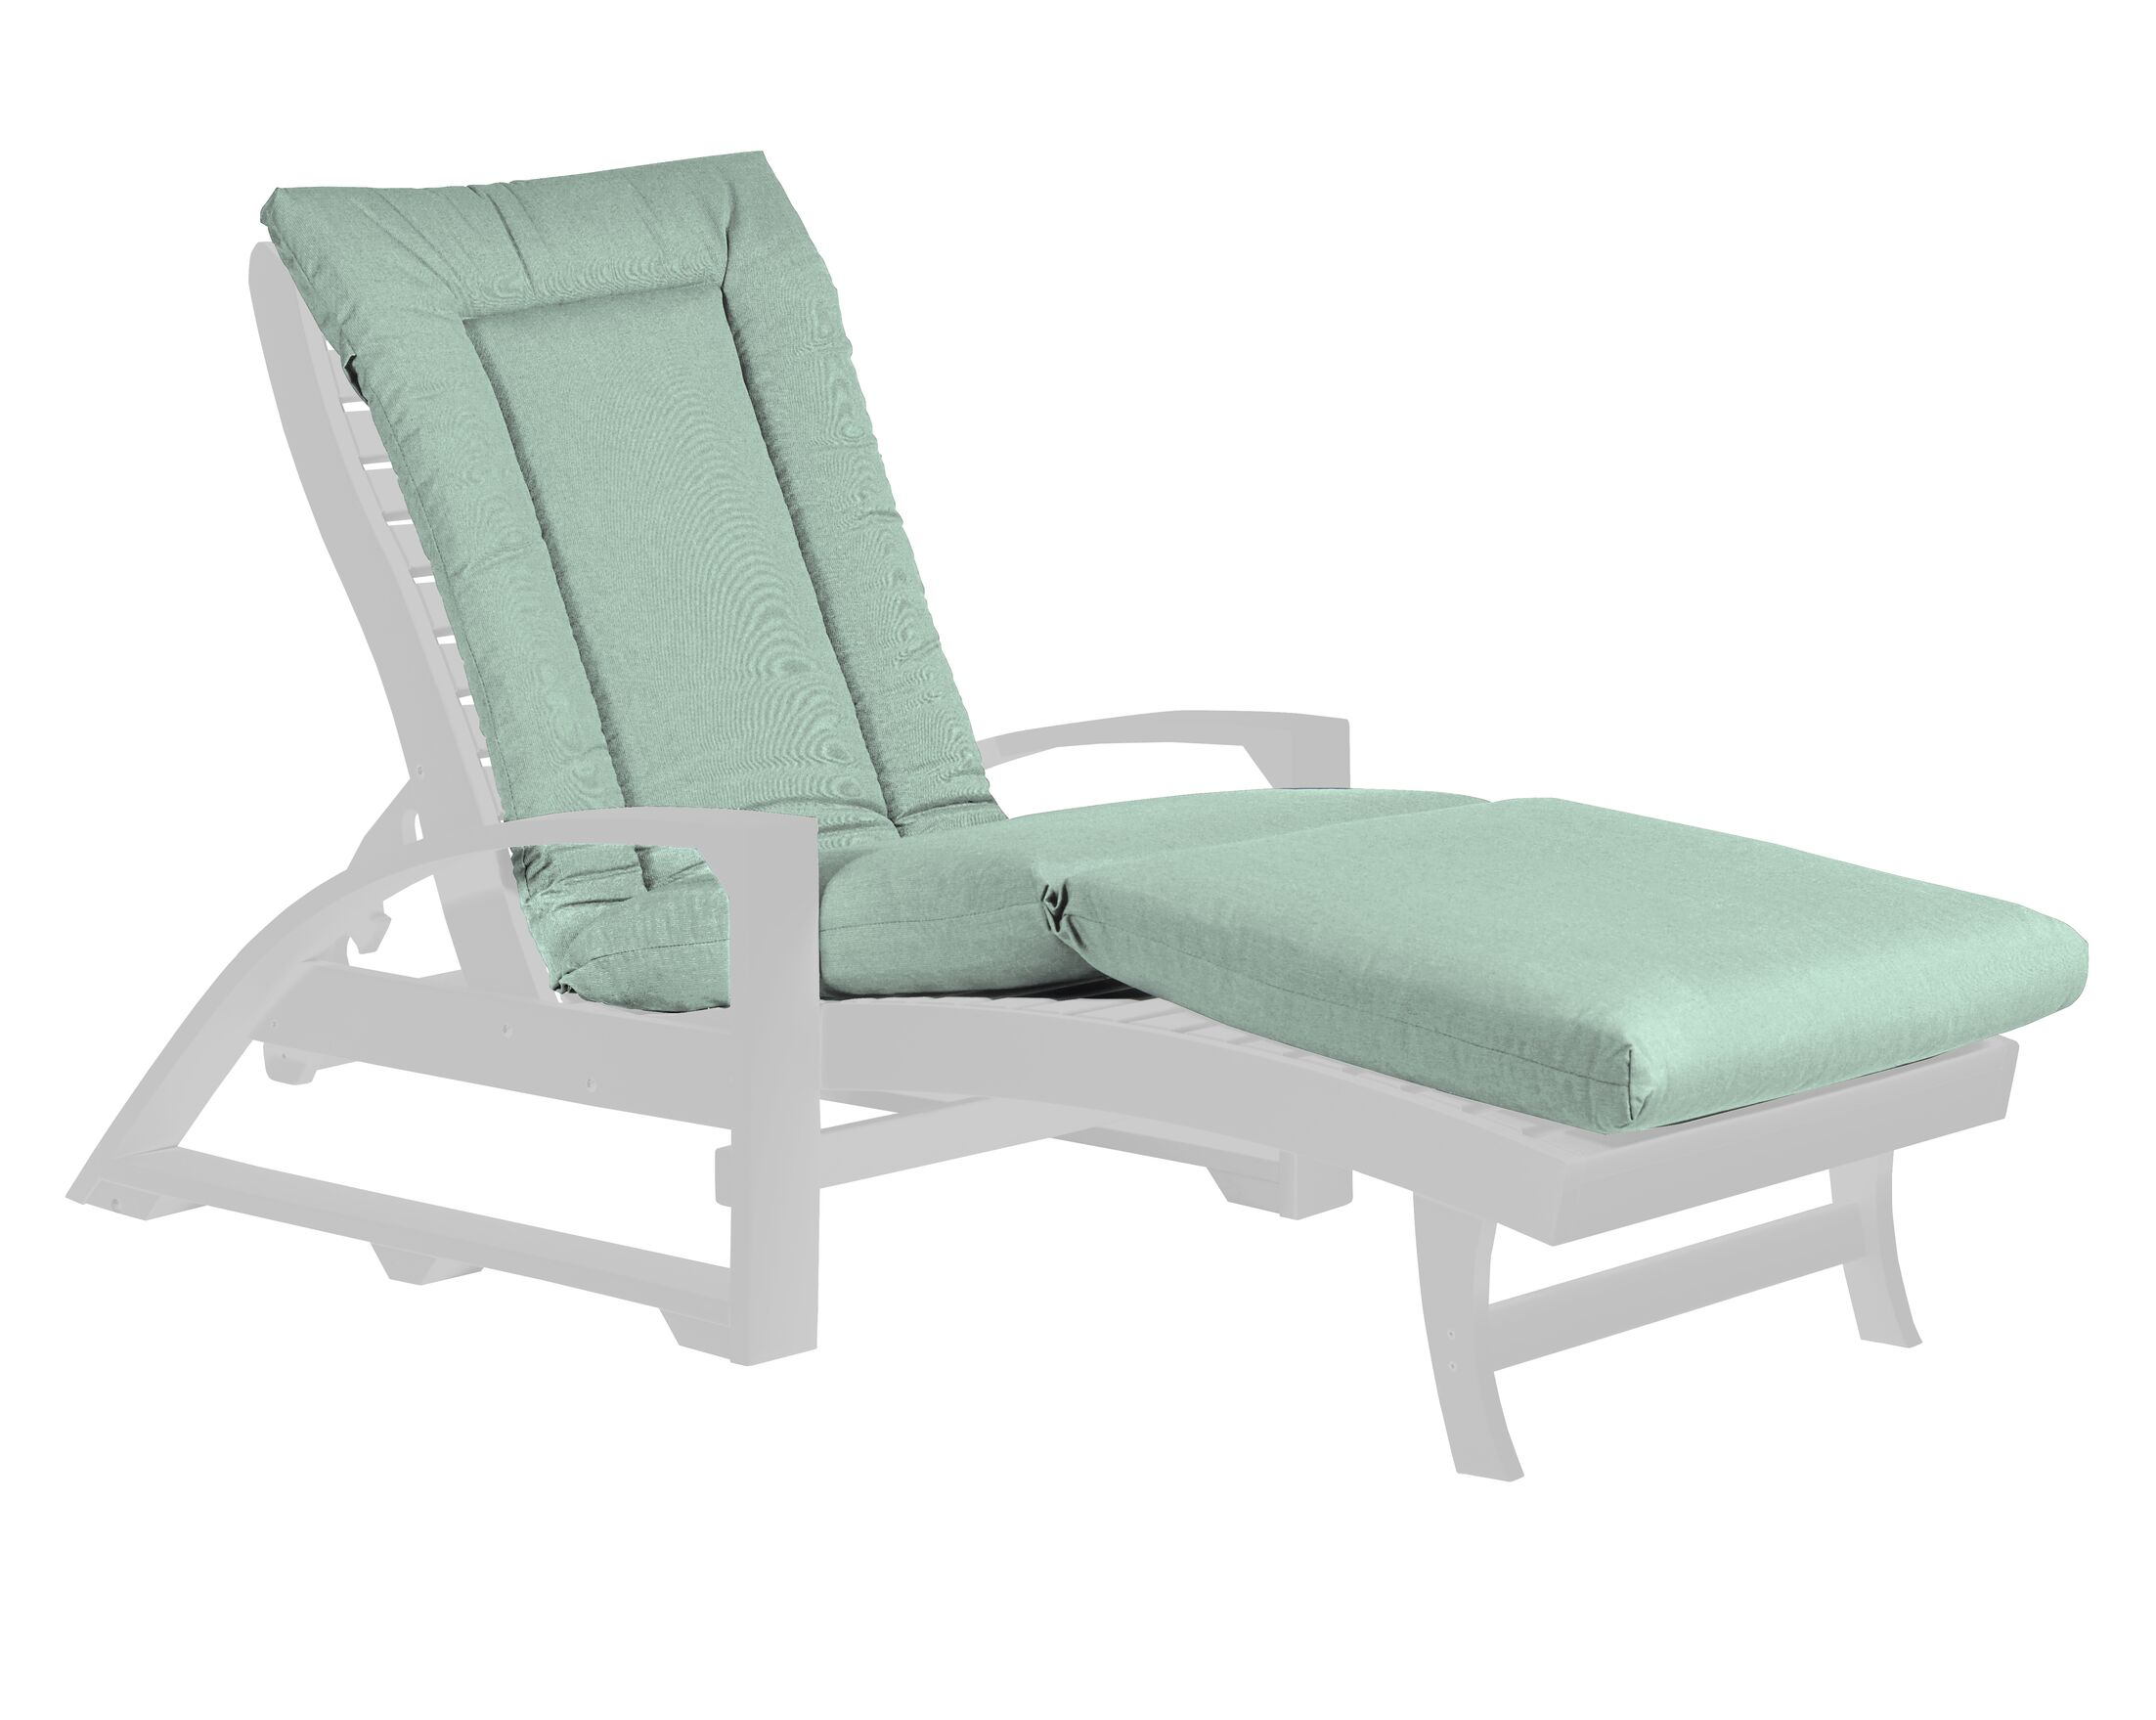 Indoor/Outdoor Sunbrella Chaise Lounge Cushion Fabric: Canvas Spa